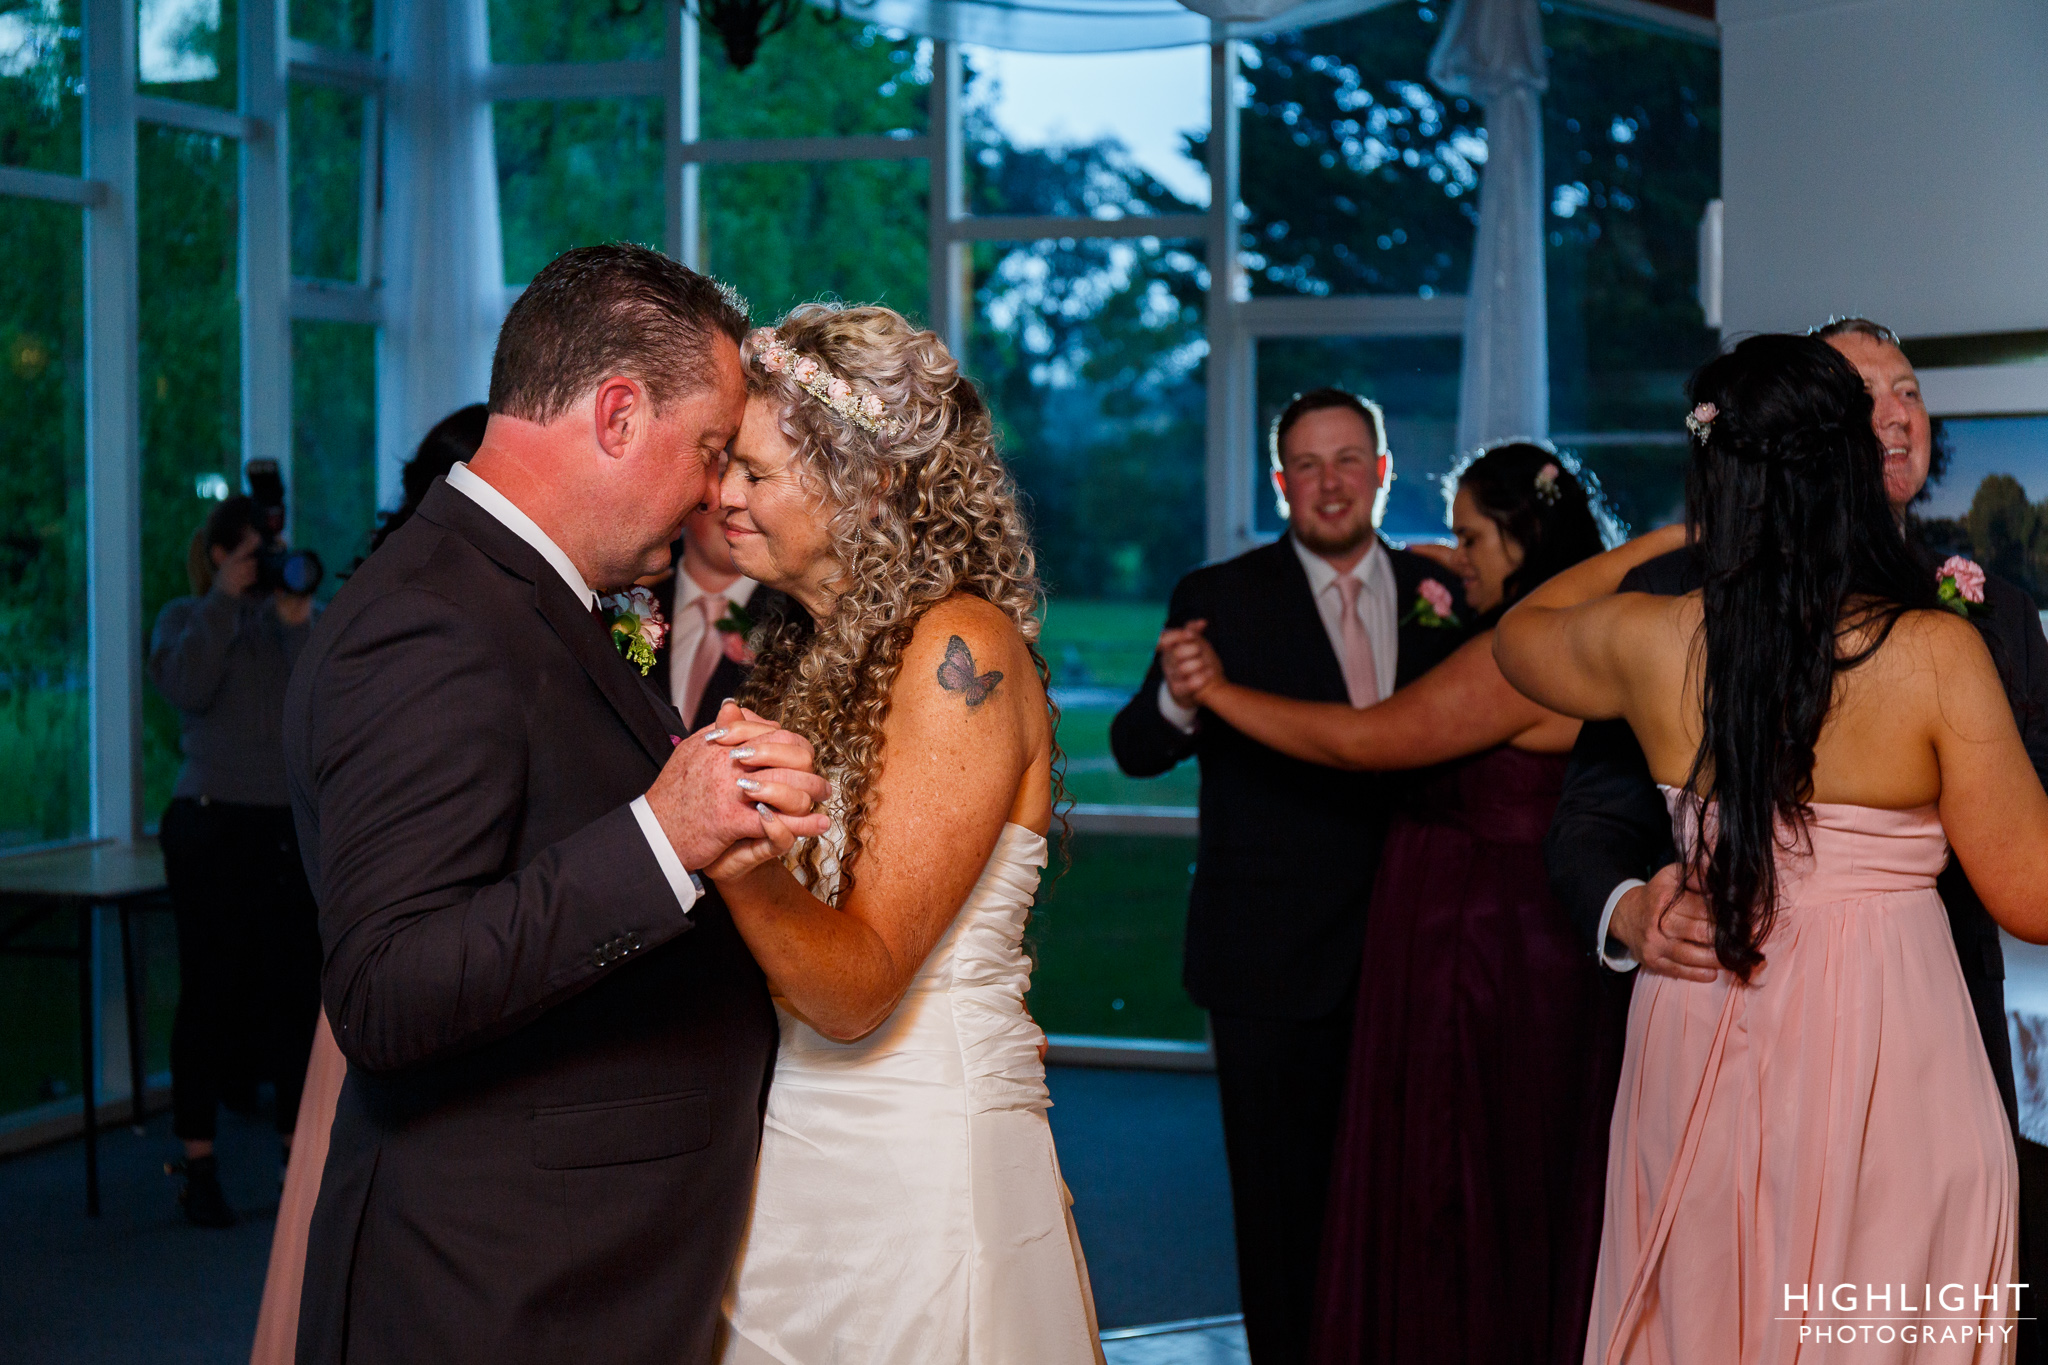 highlight_wedding_photography_palmerston_north_manawatu_chalet_wedding-122.jpg